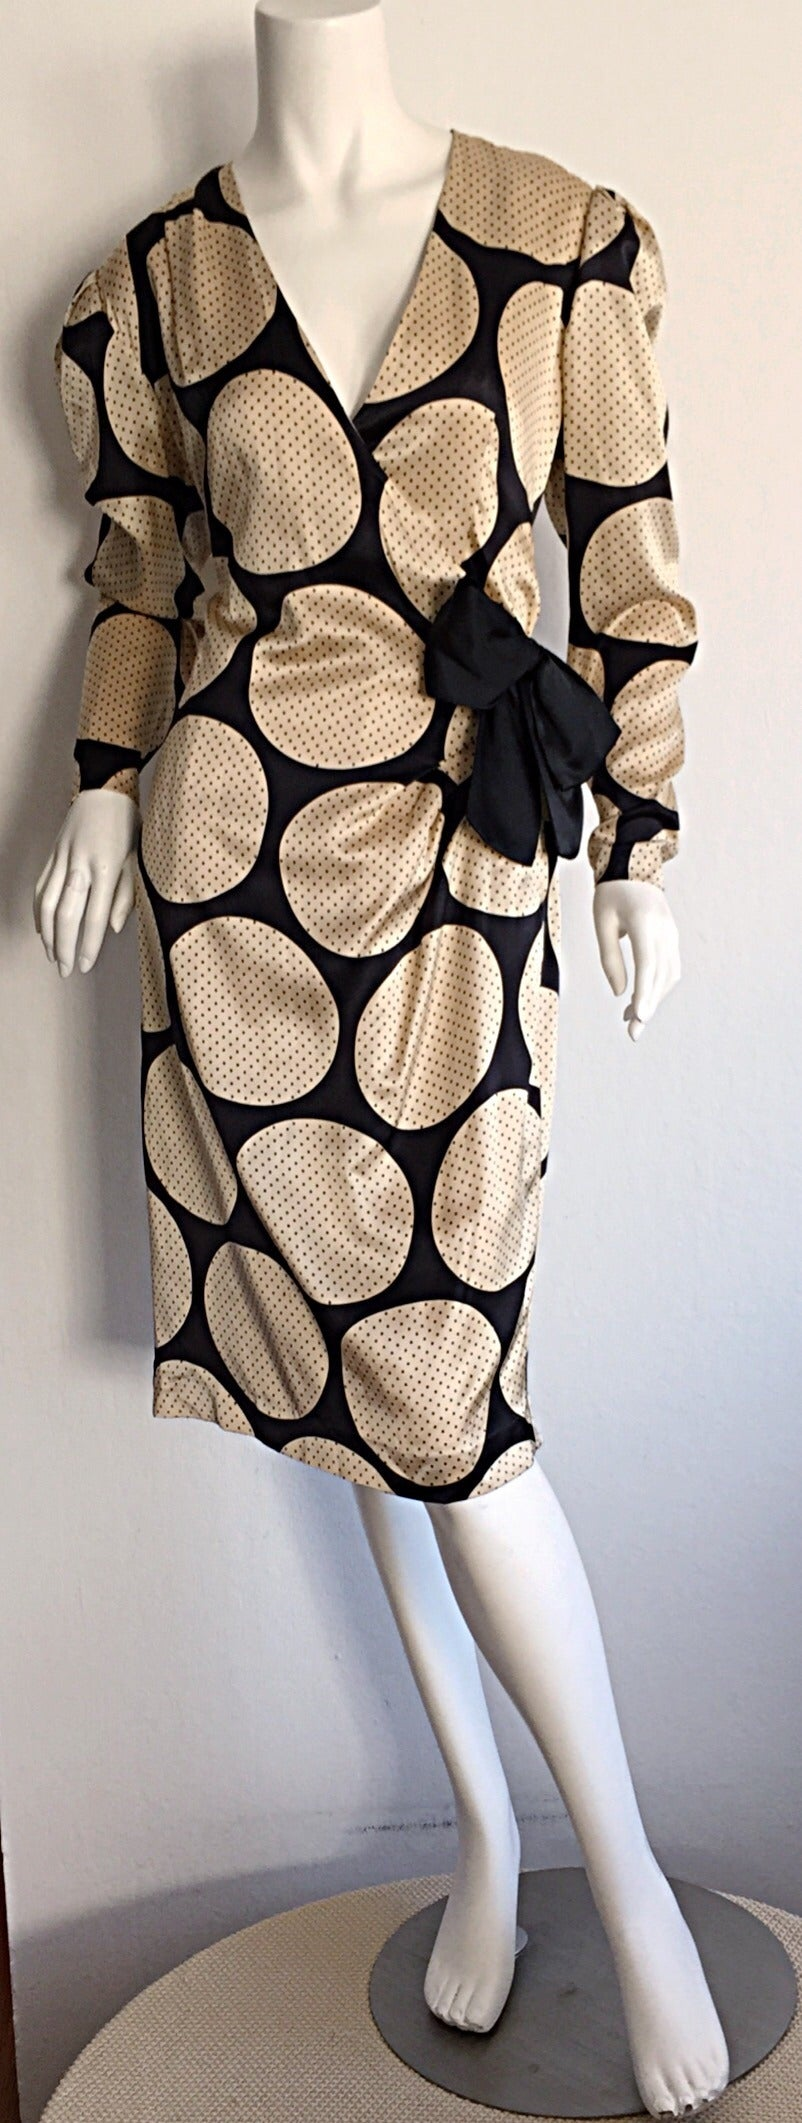 Stunning vintage Hanae Mori dress!!! 100% lined silk. Inside hook-and-eye closures. Great for the office, or a cocktail party! Fully lined. In great condition. Approximately Size Medium-Large Measurements: (Slight stretch) 38-41 inch bust Up to 32